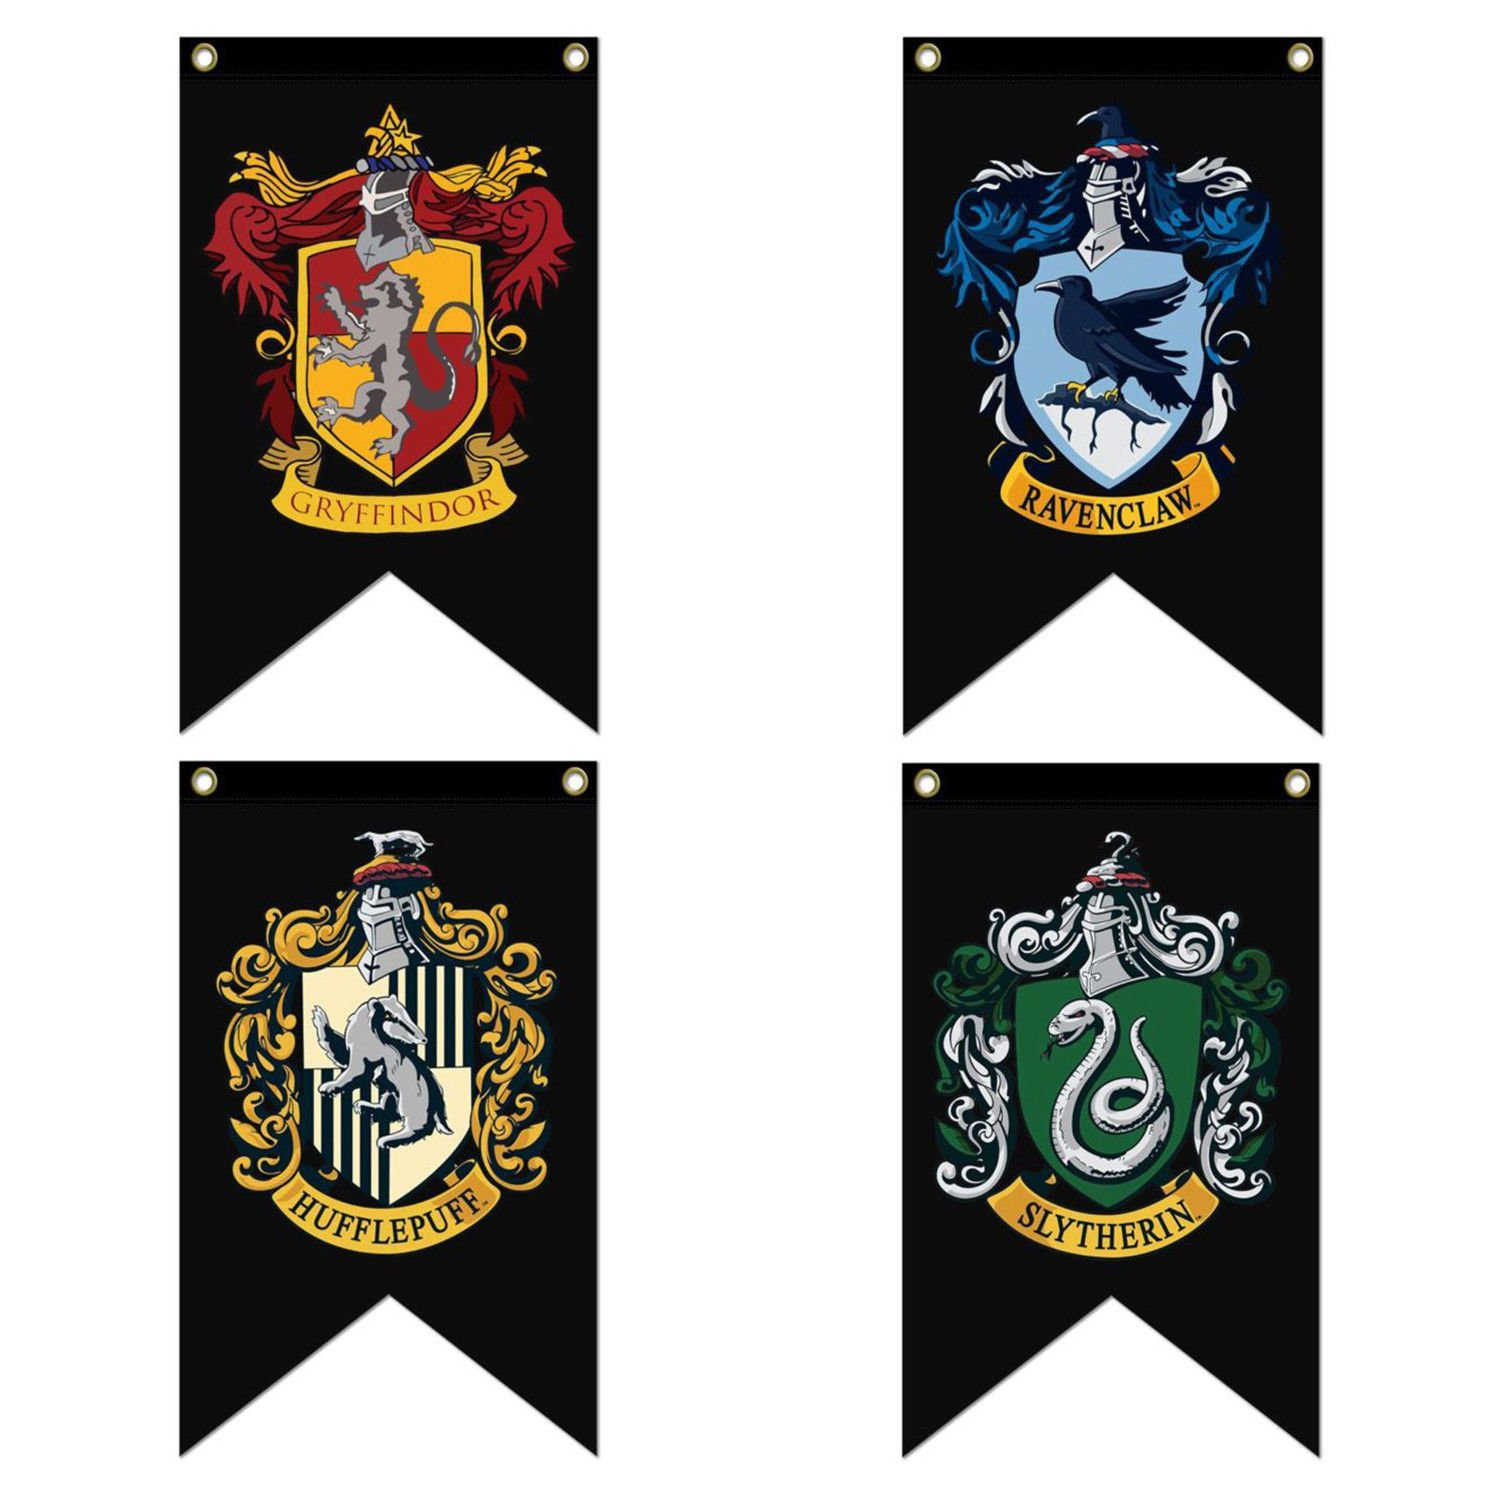 HP Complete Hogwarts House Banners (Black Edition) 4pc. Set - Gryffindor, Slytherin, Hufflepuff, Ravenclaw | Ultra Premium Double Layered